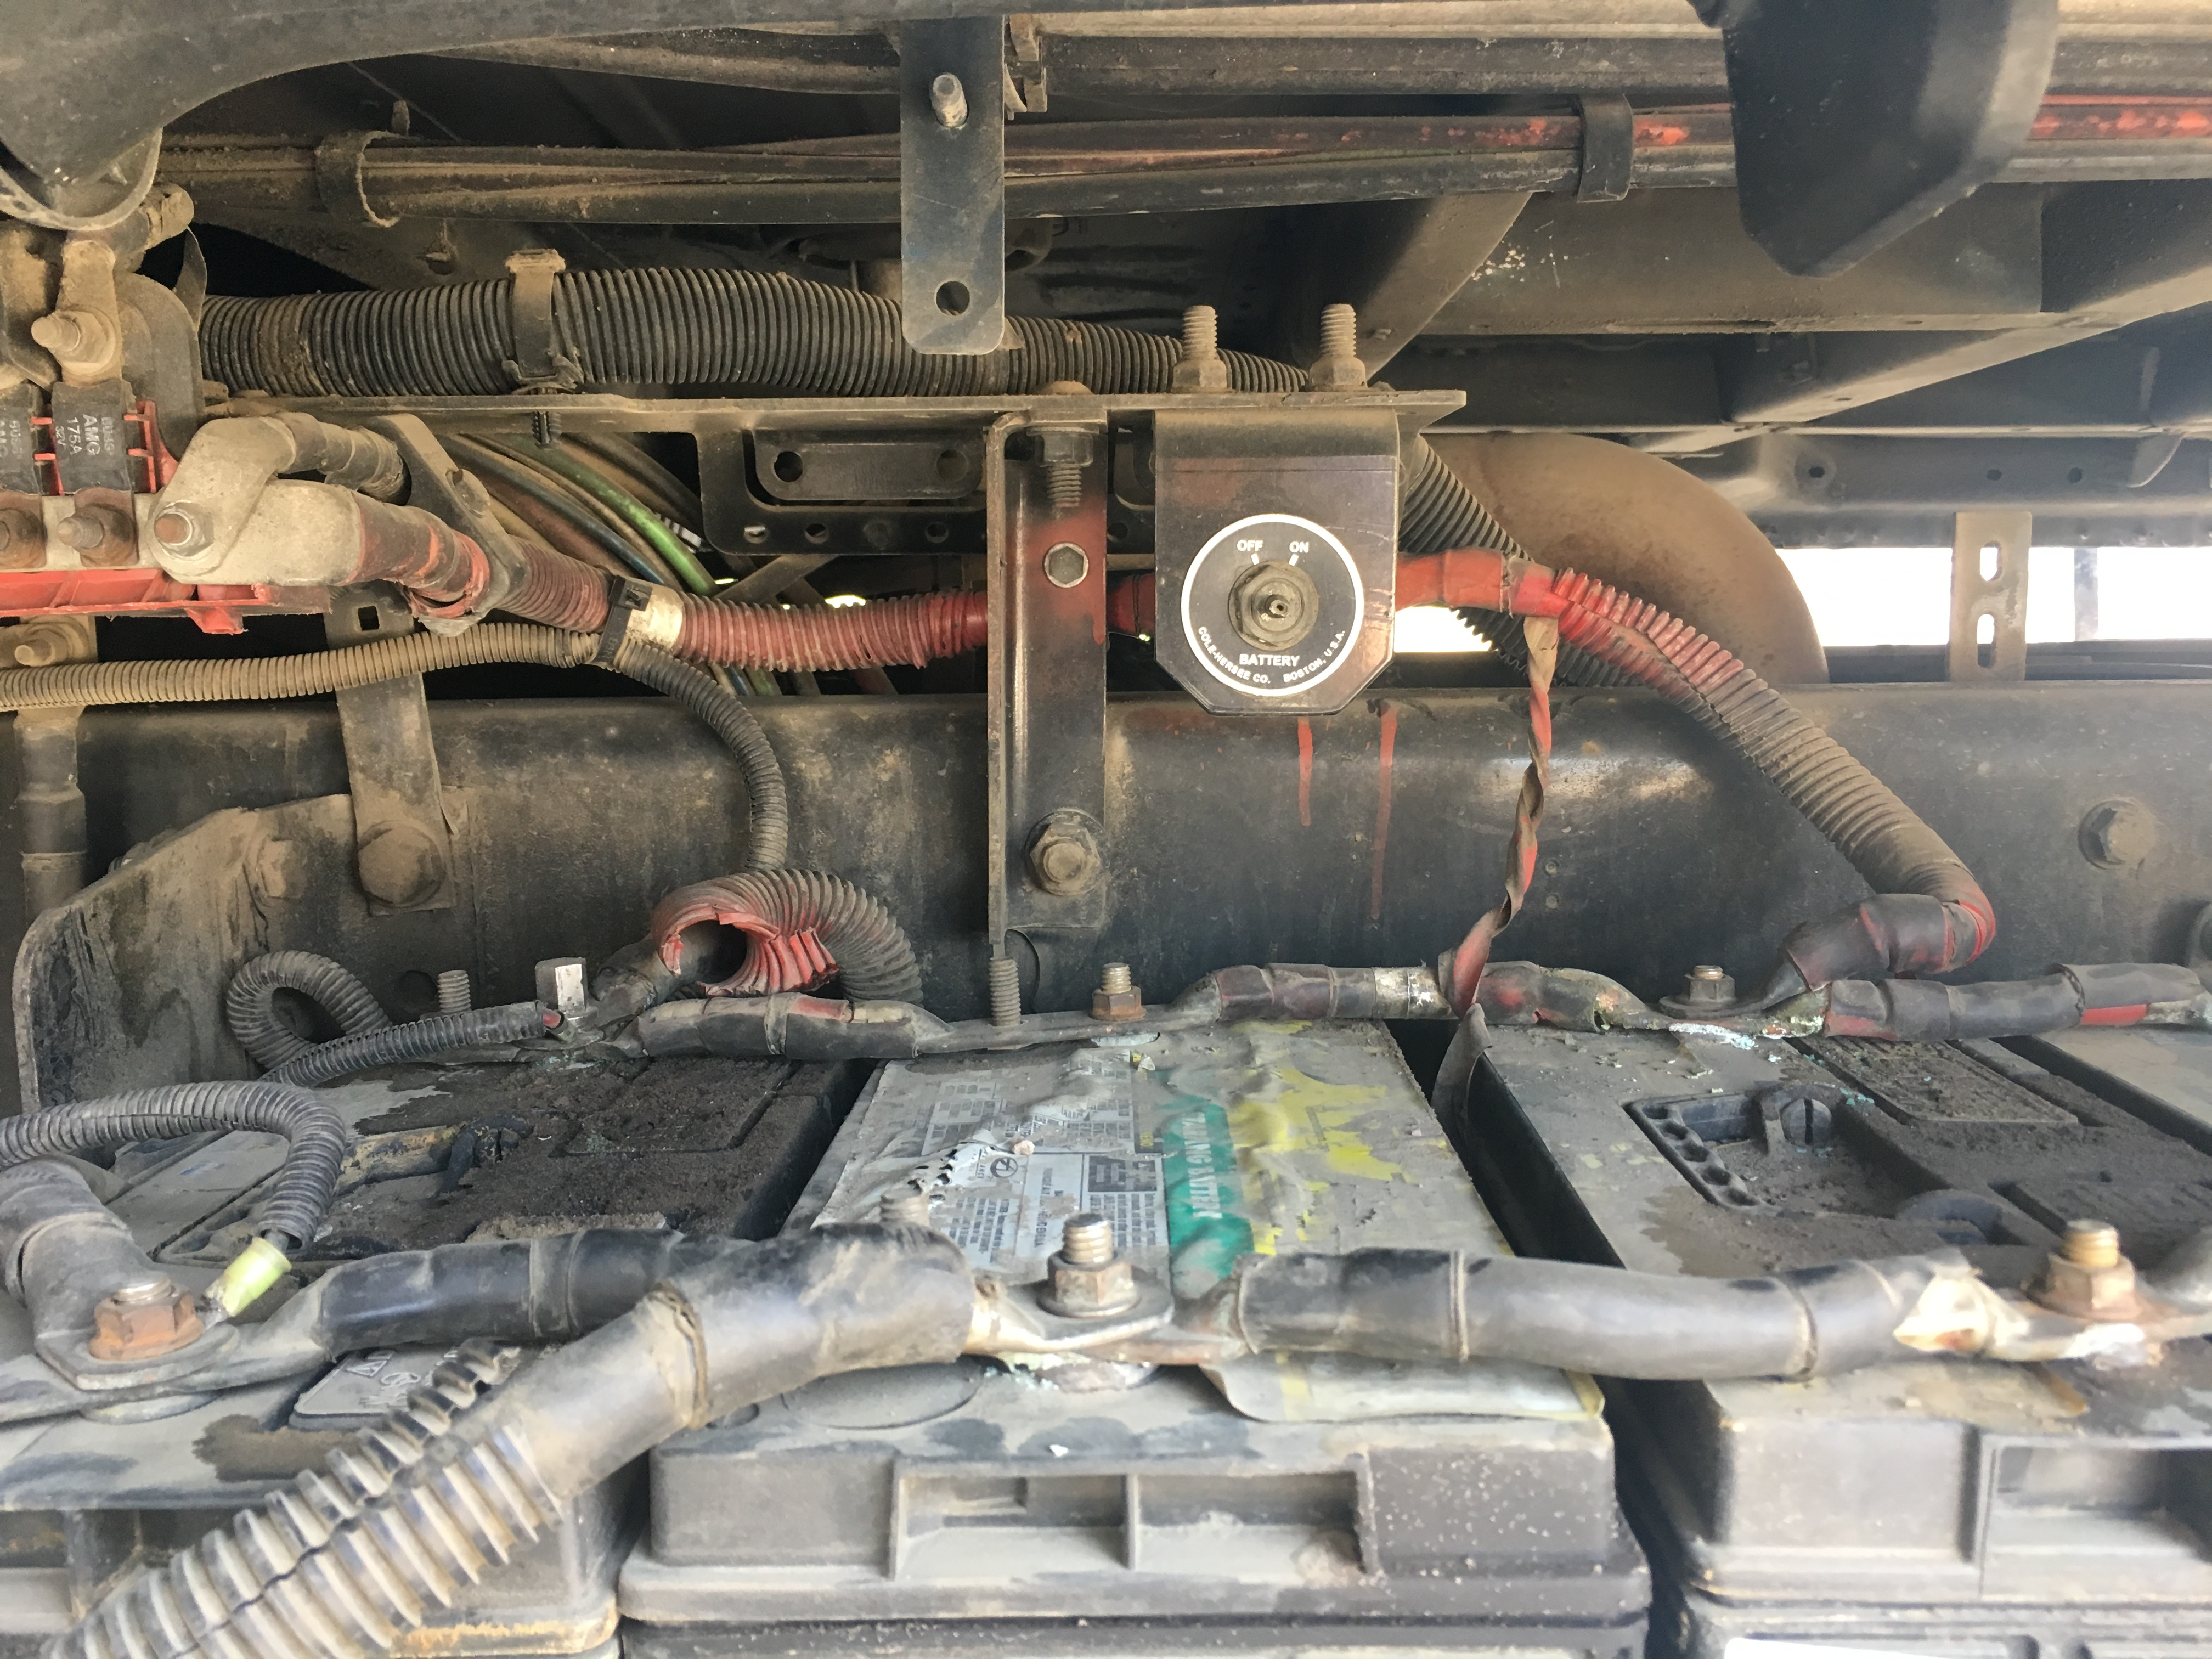 2008 freightliner cascadia Shutting off after 4 min because